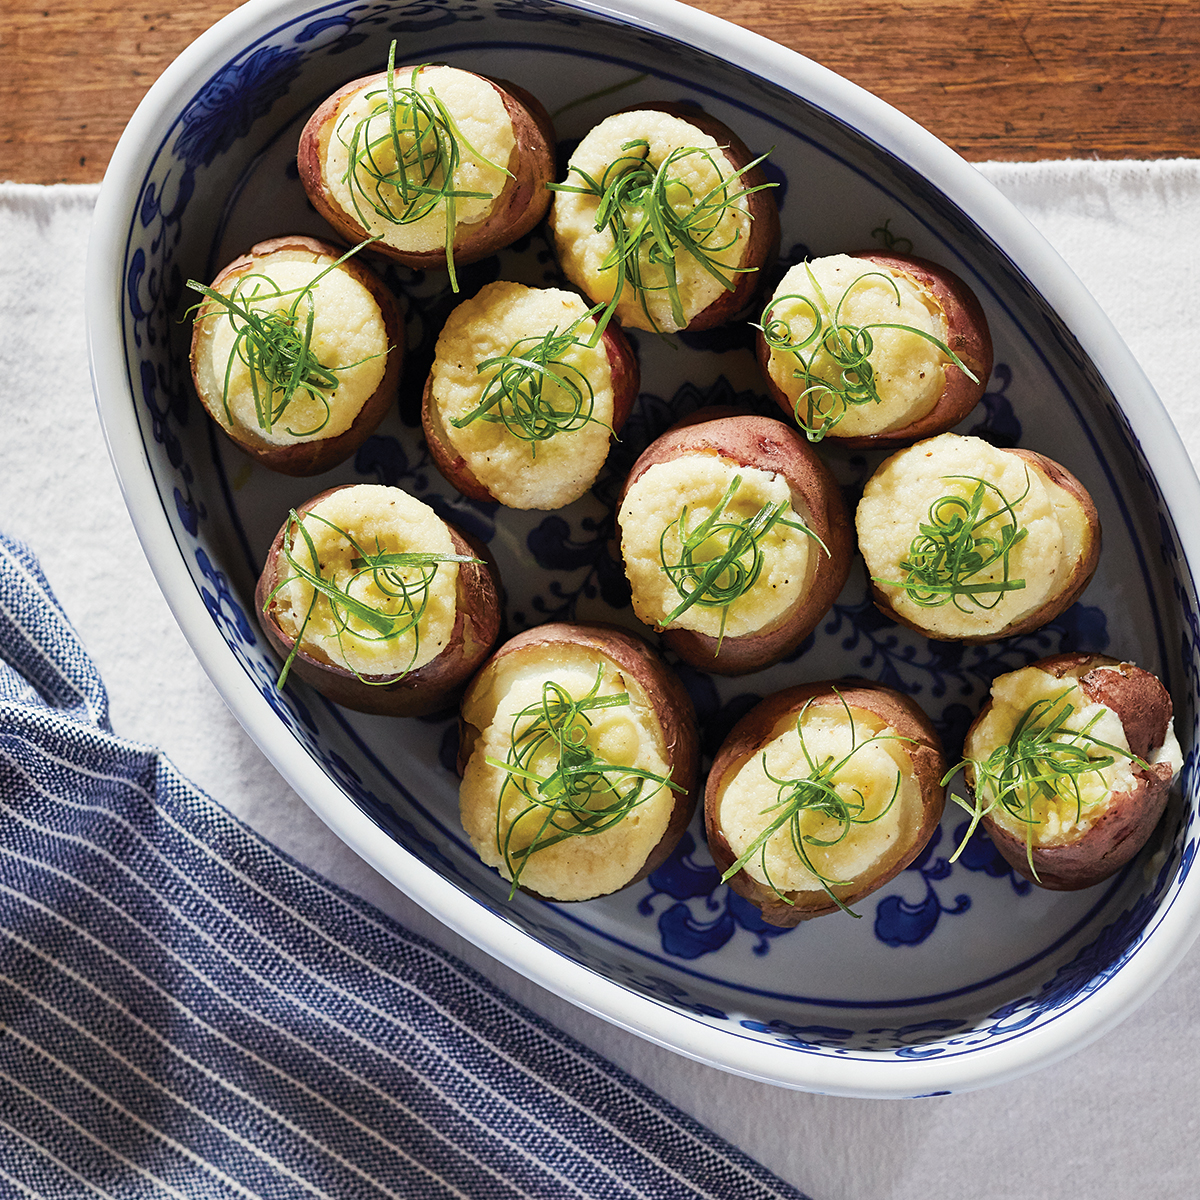 Baked Stuffed New Potatoes